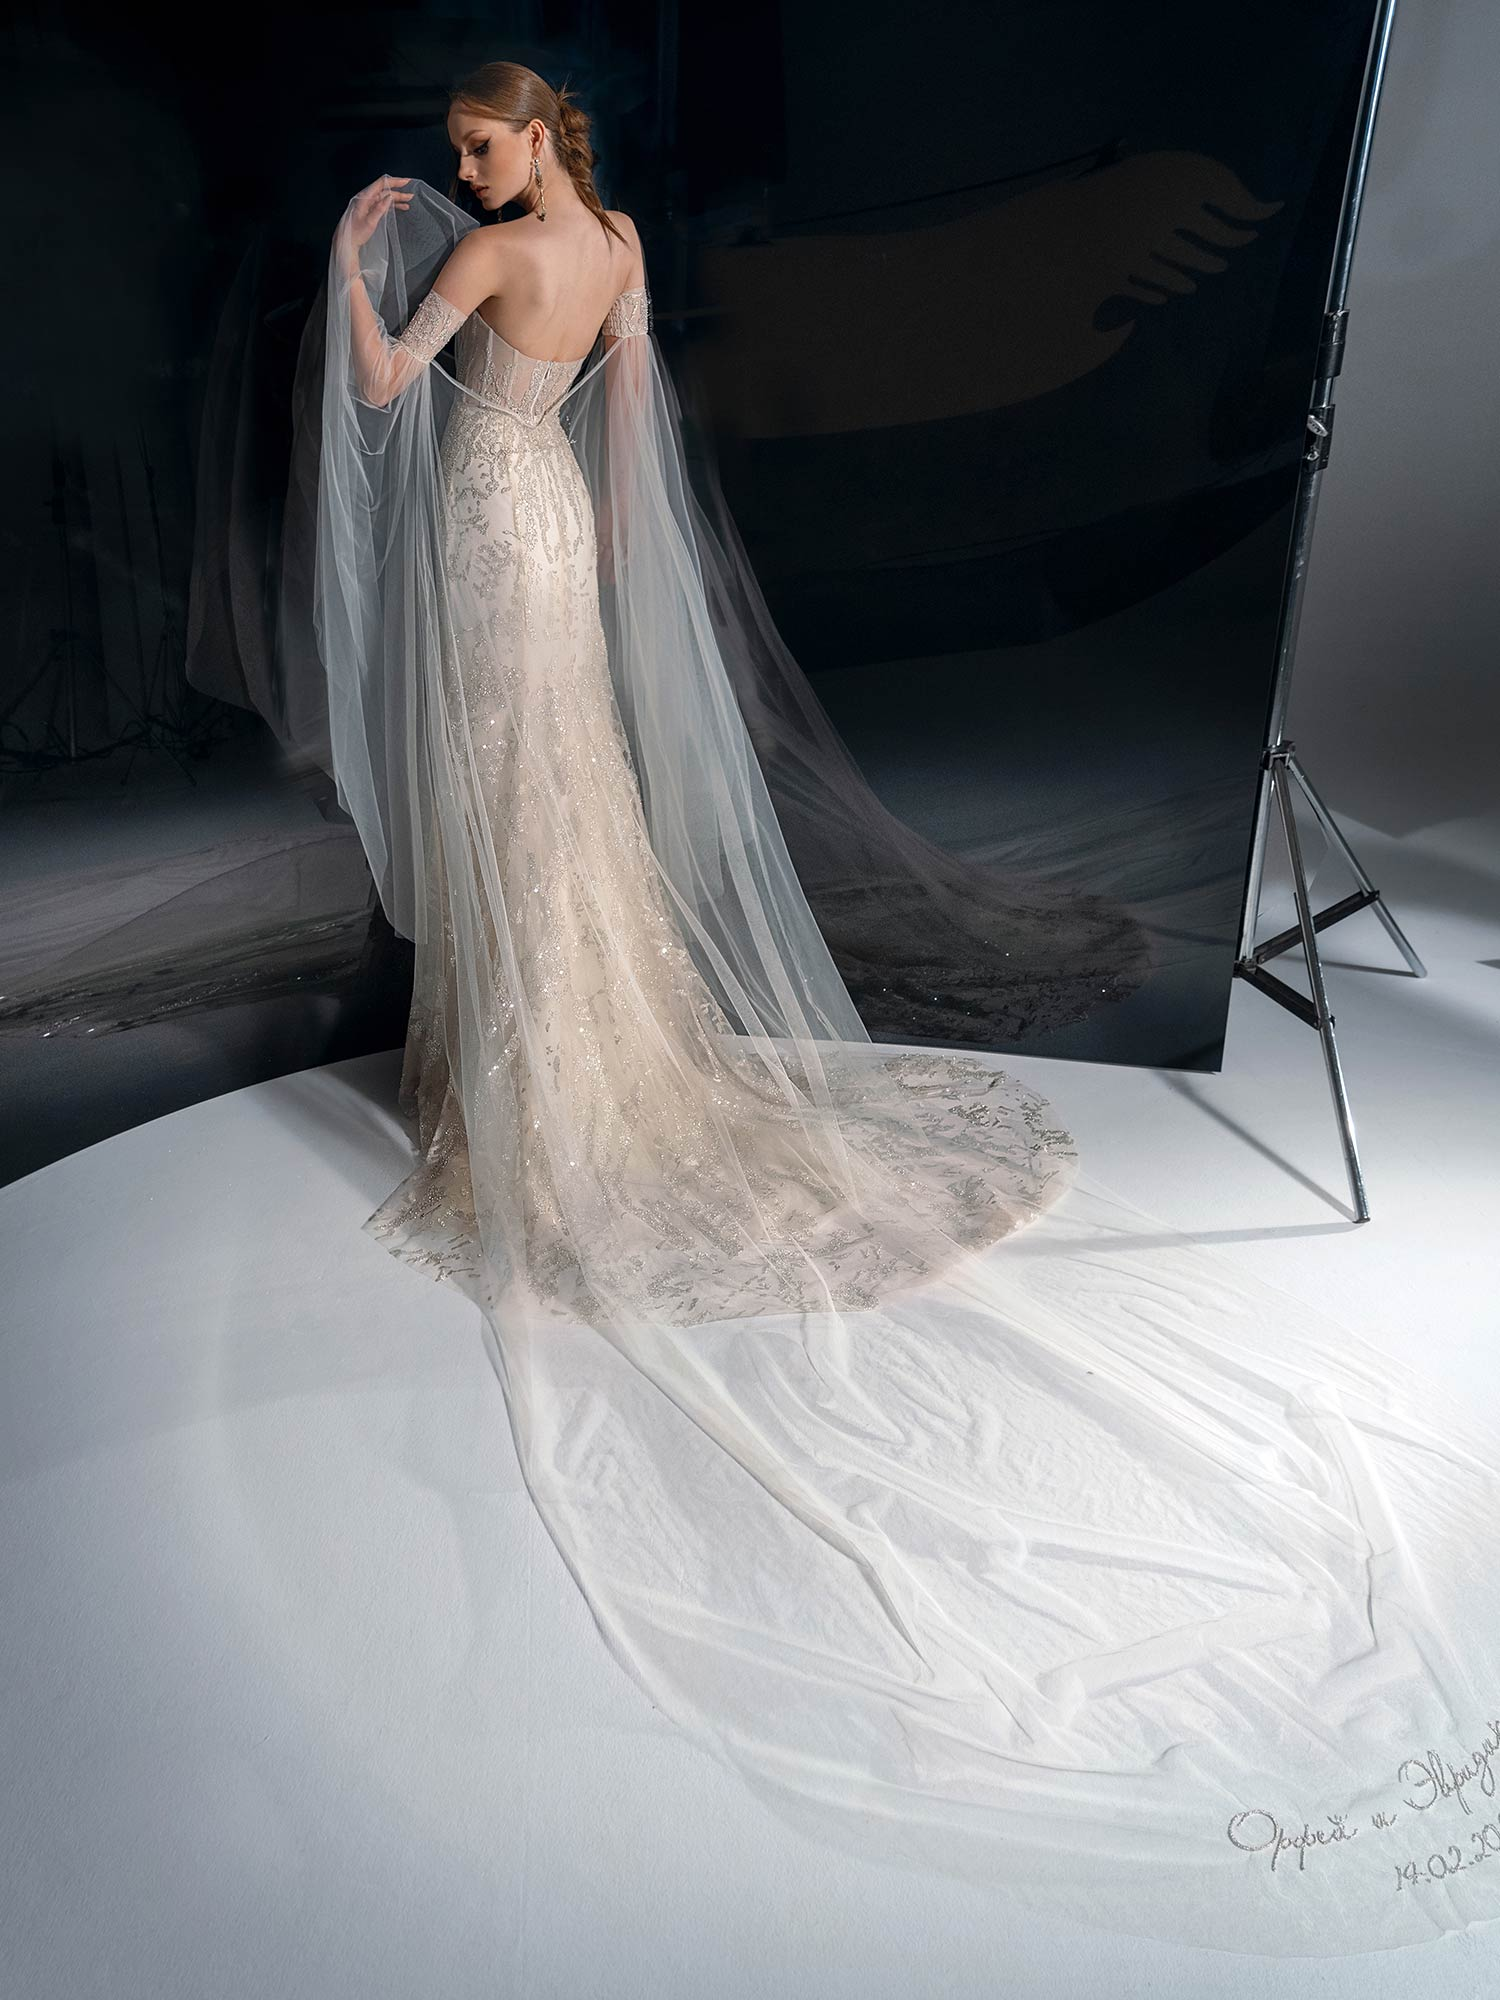 Style #2137, beaded lace sheath wedding dress with sweetheart neckline, available in cream-nude, cream